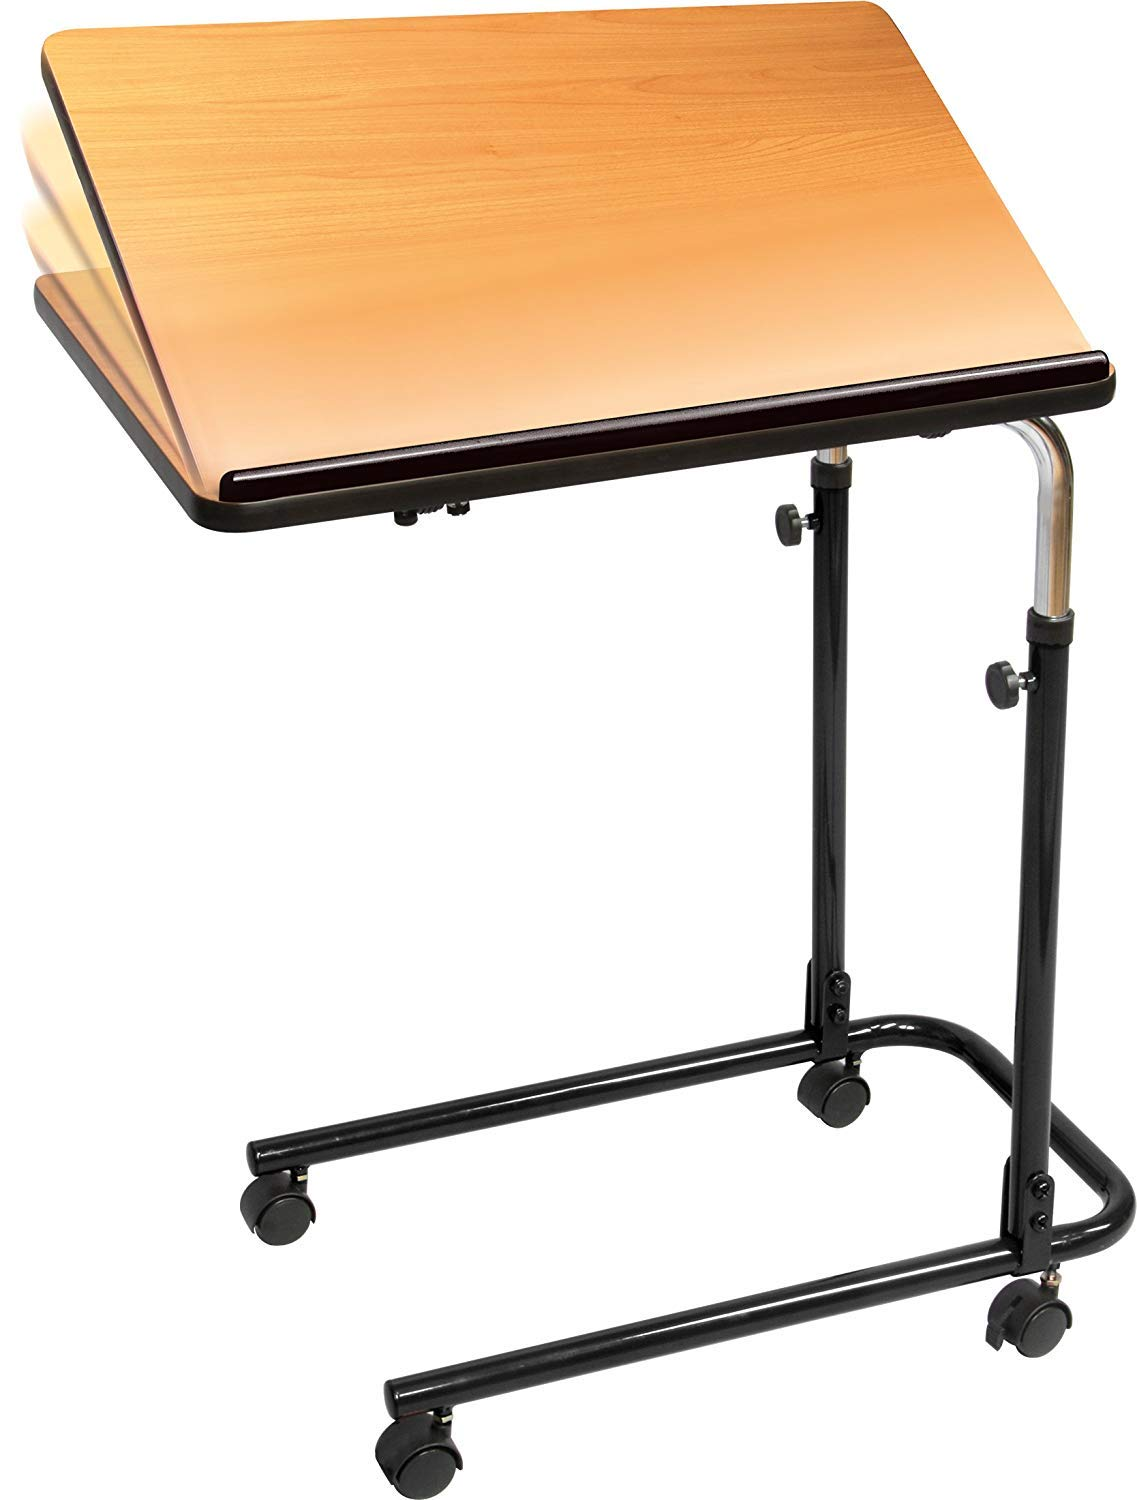 Carex Home Overbed Table With Tilting Top - Hospital Bed Table For Home Use - Bed Tray Table For Eating and Laptops